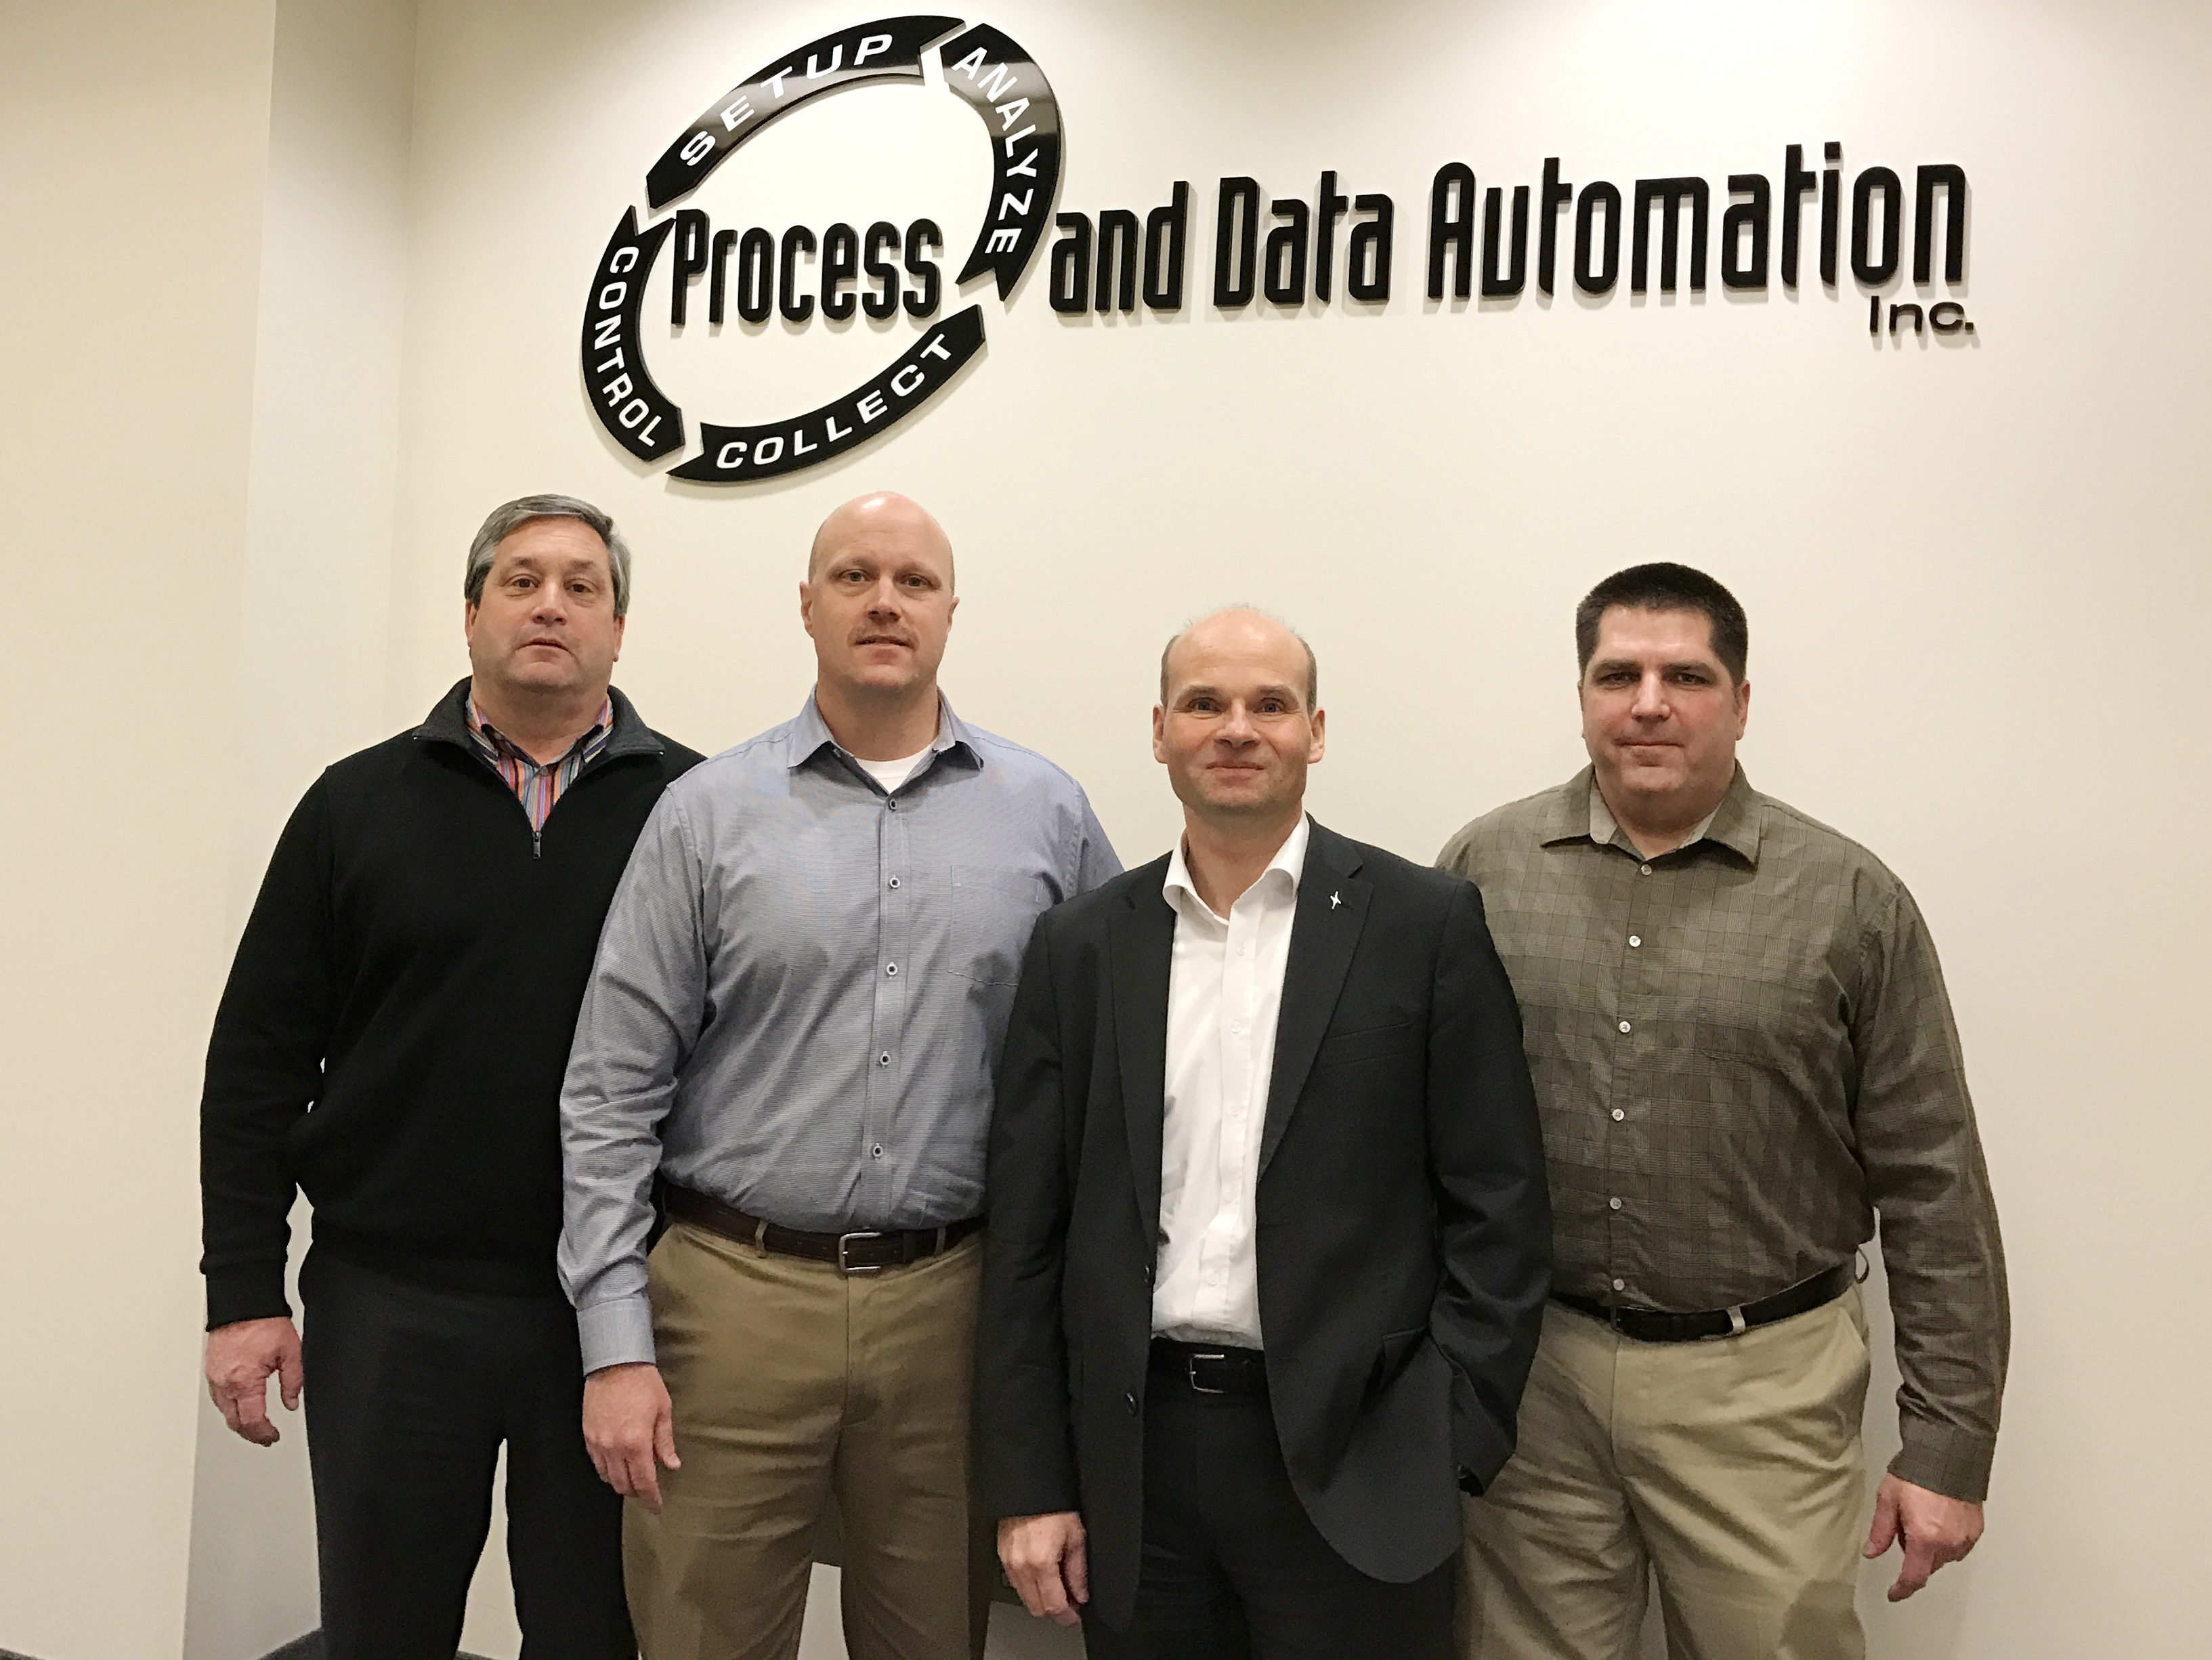 From left to right: Tim Raymond, Executive Vice President, Sales and Marketing, Krones Inc., Joseph Snyder, President, Process and Data Automation, Holger Beckmann, Chief Executive Officer, Krones Inc., Michael Benedict, Vice President, Process and Data Automation (Photo: Krones Inc.)